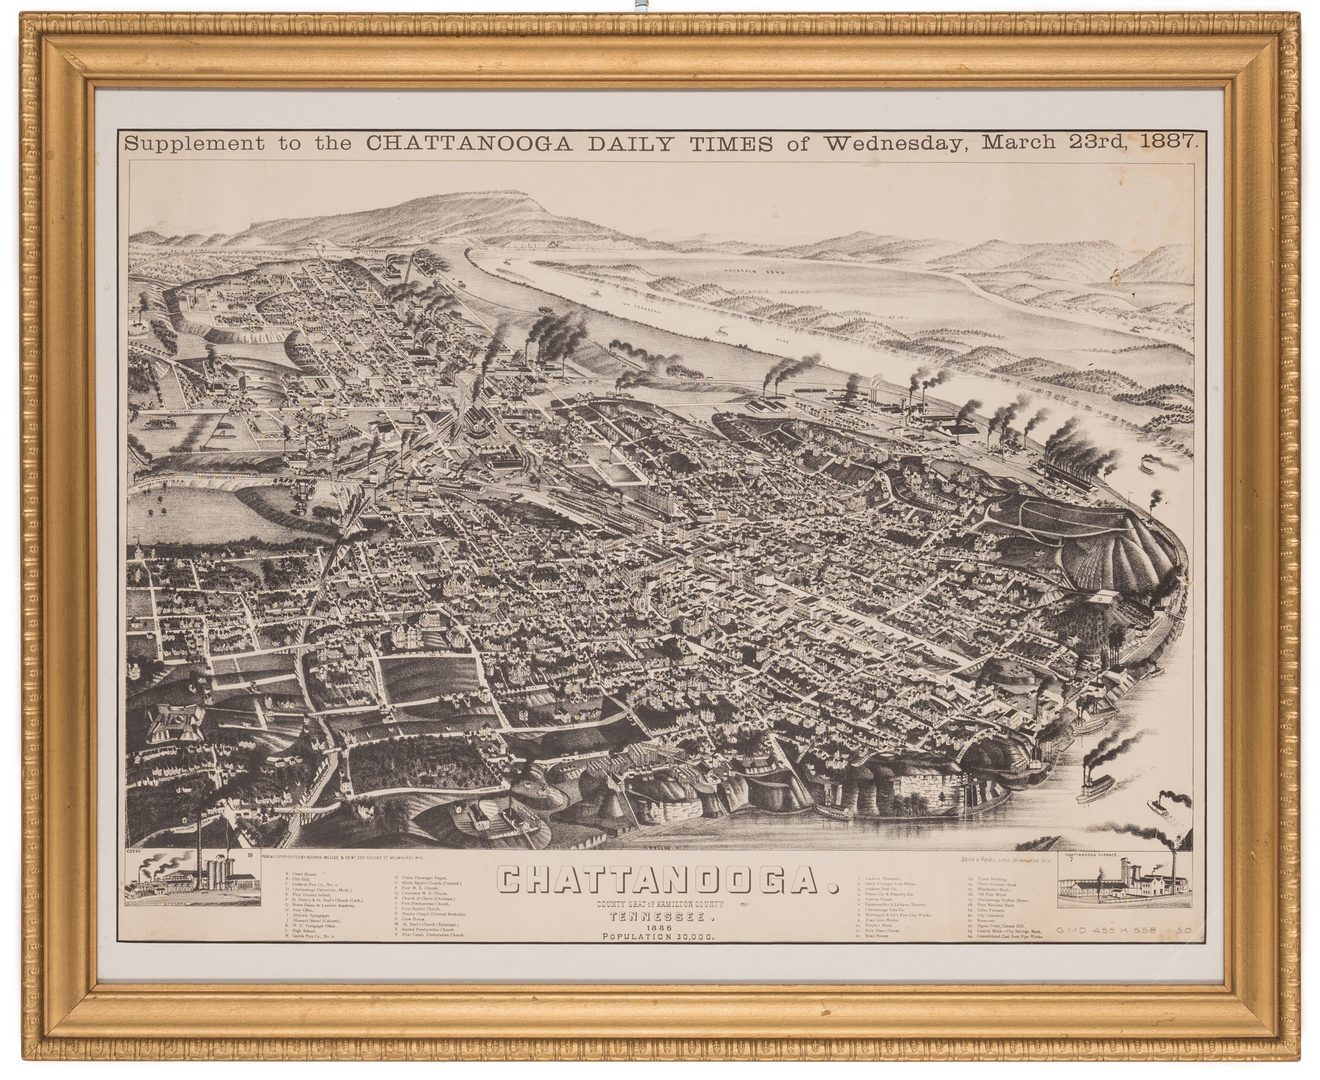 Lot 752: Chattanooga Map, 1887, Wellge